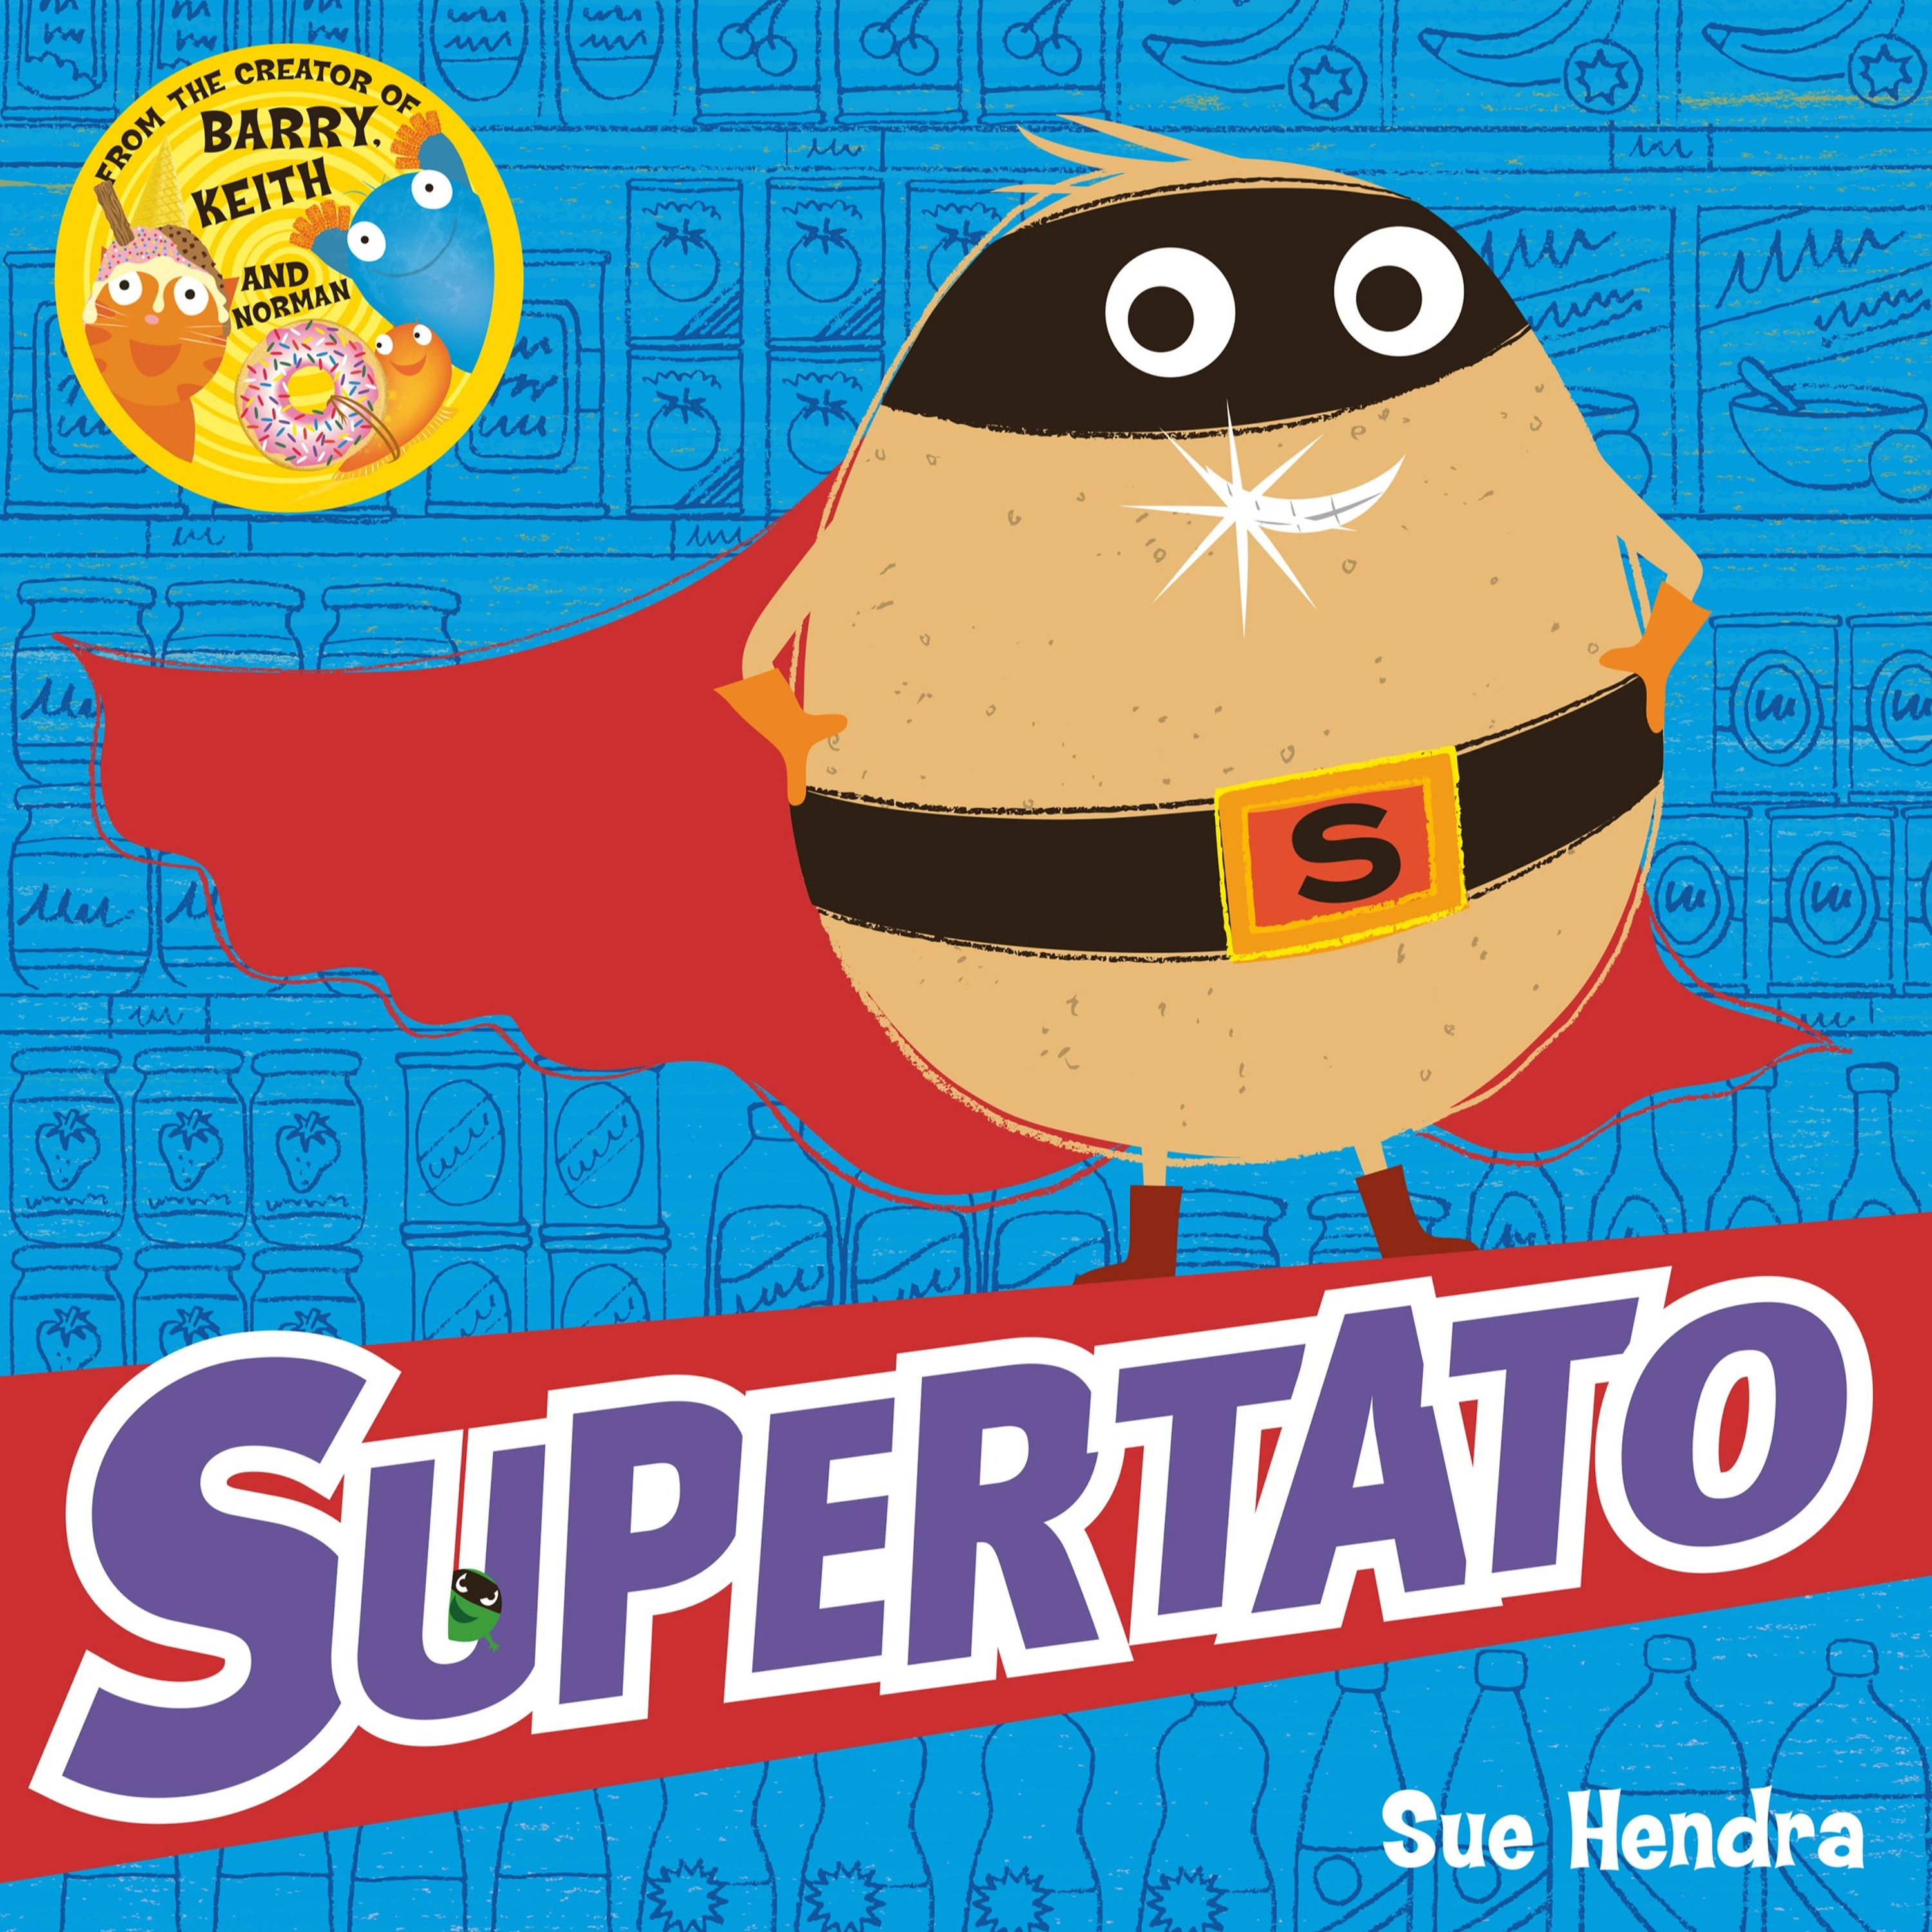 'Supertato' by Sue Hendra